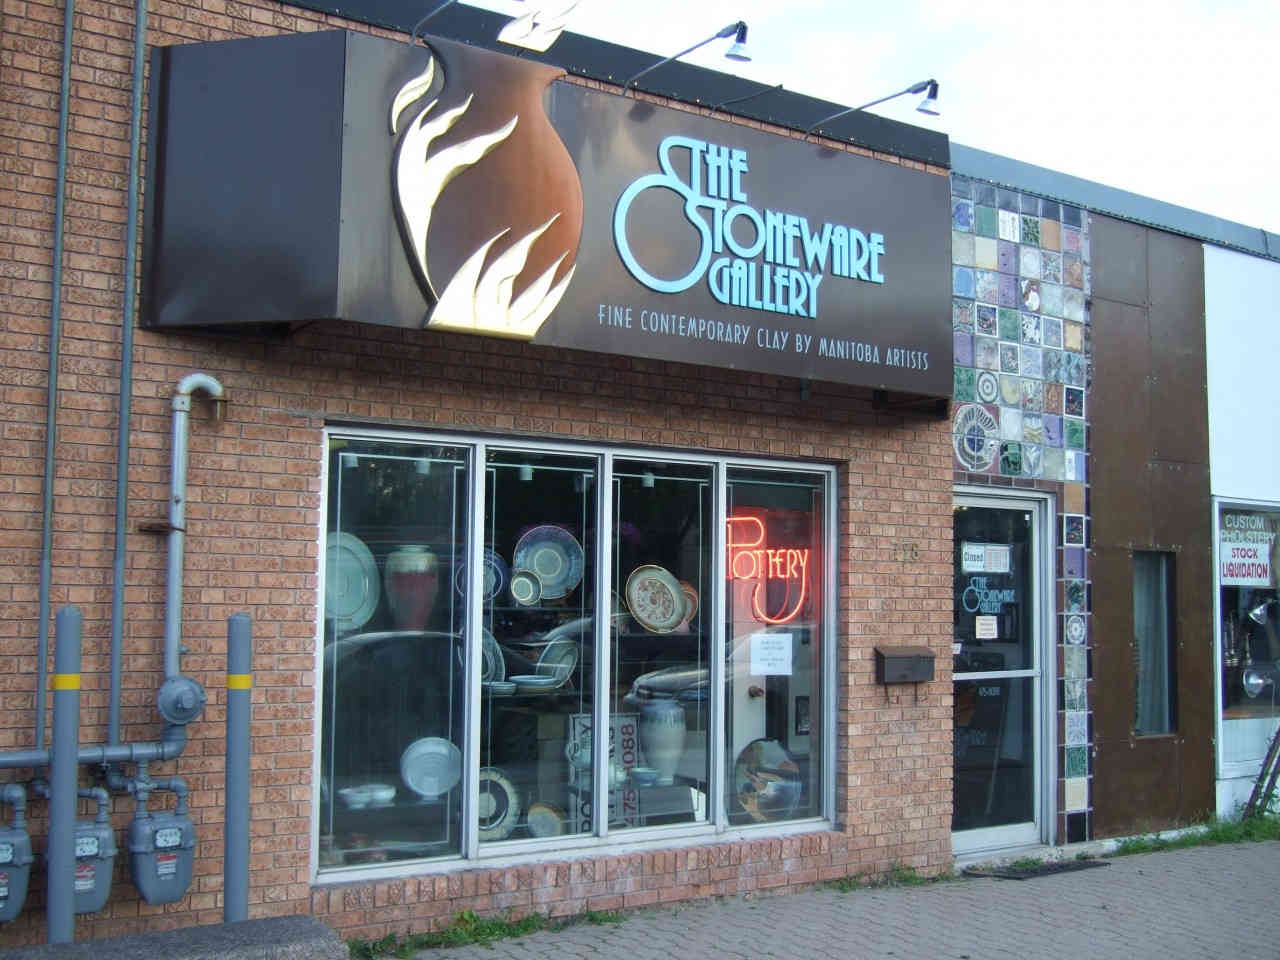 The Stoneware Gallery, Winnipeg